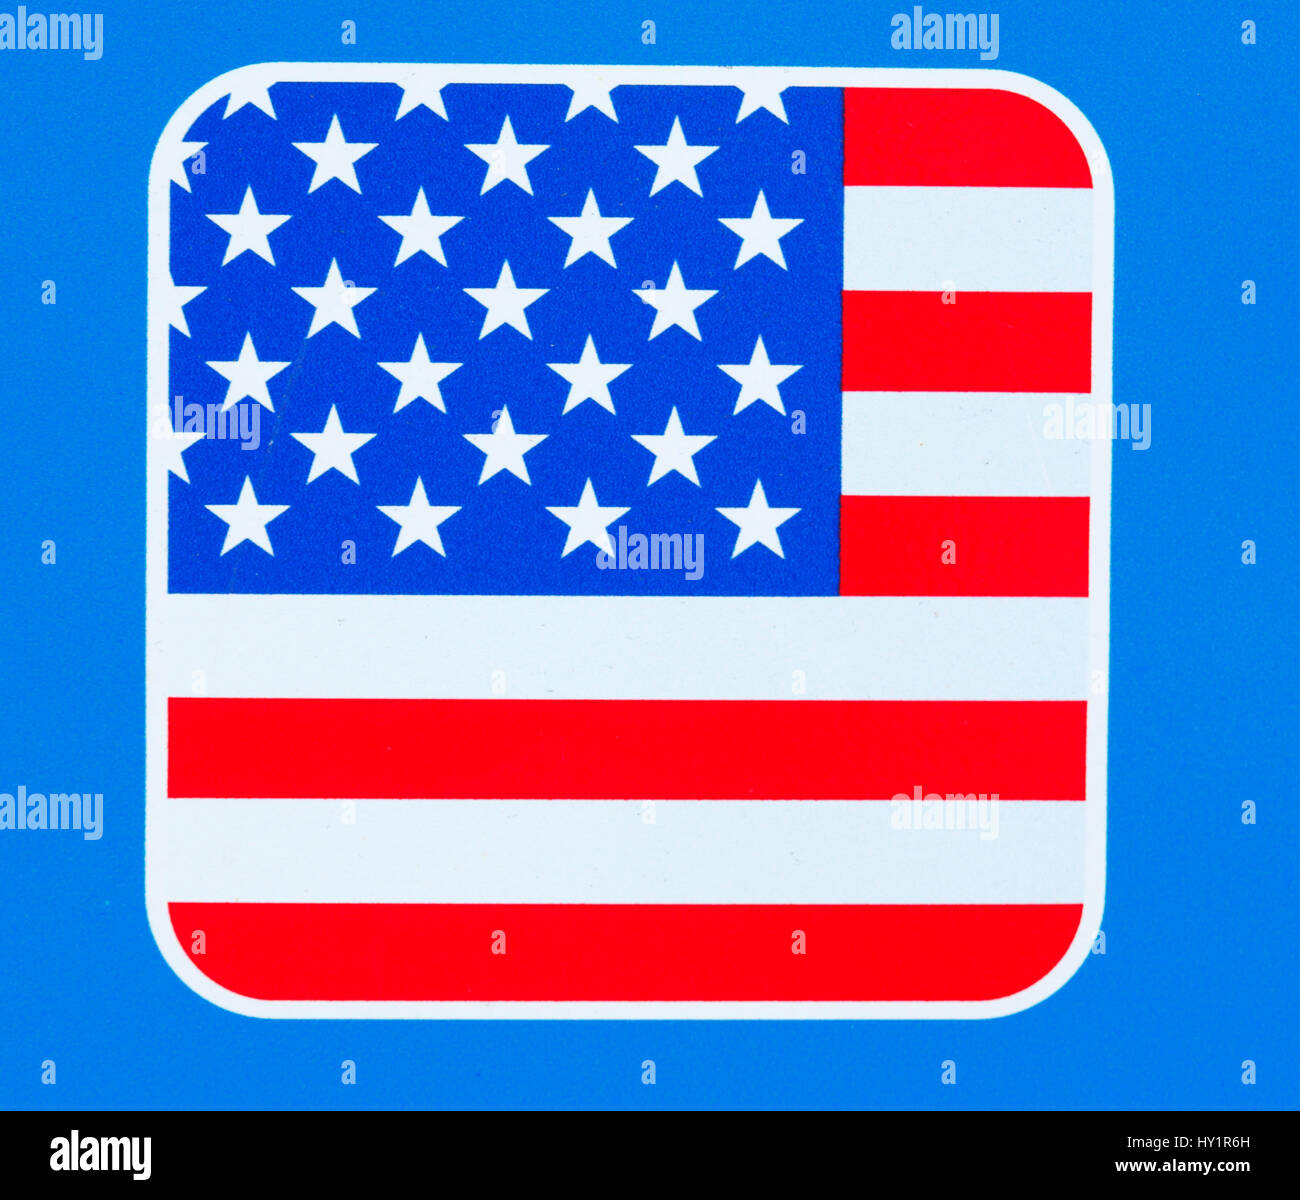 Flag of the United States of America - Stock Image